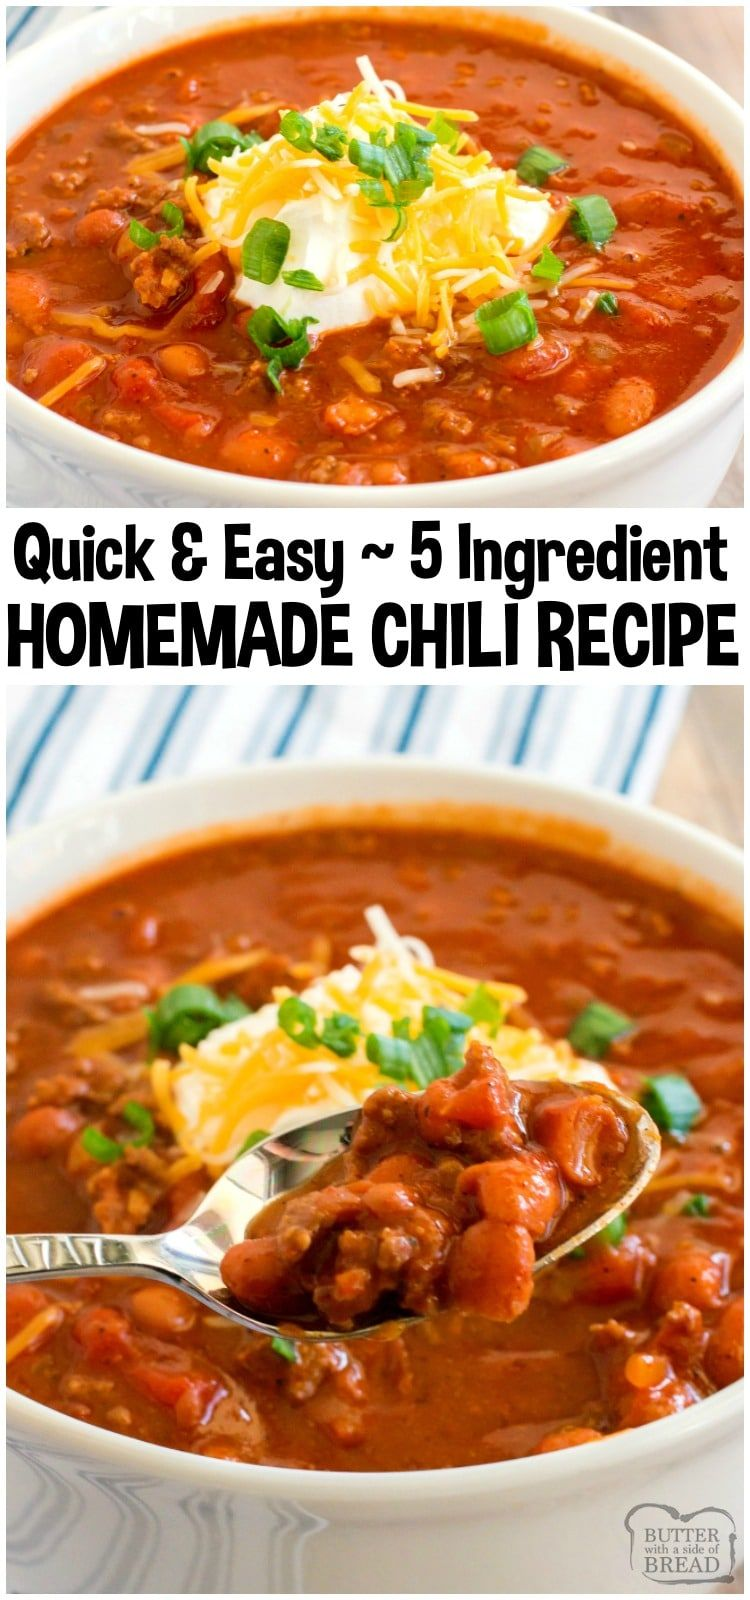 Easy Chili Recipe Made In Under An Hour With Just 5 Ingredients Simple Flavorful Ground B Chili Recipe Easy Ground Beef Chili Recipes Easy Beef Chili Recipe